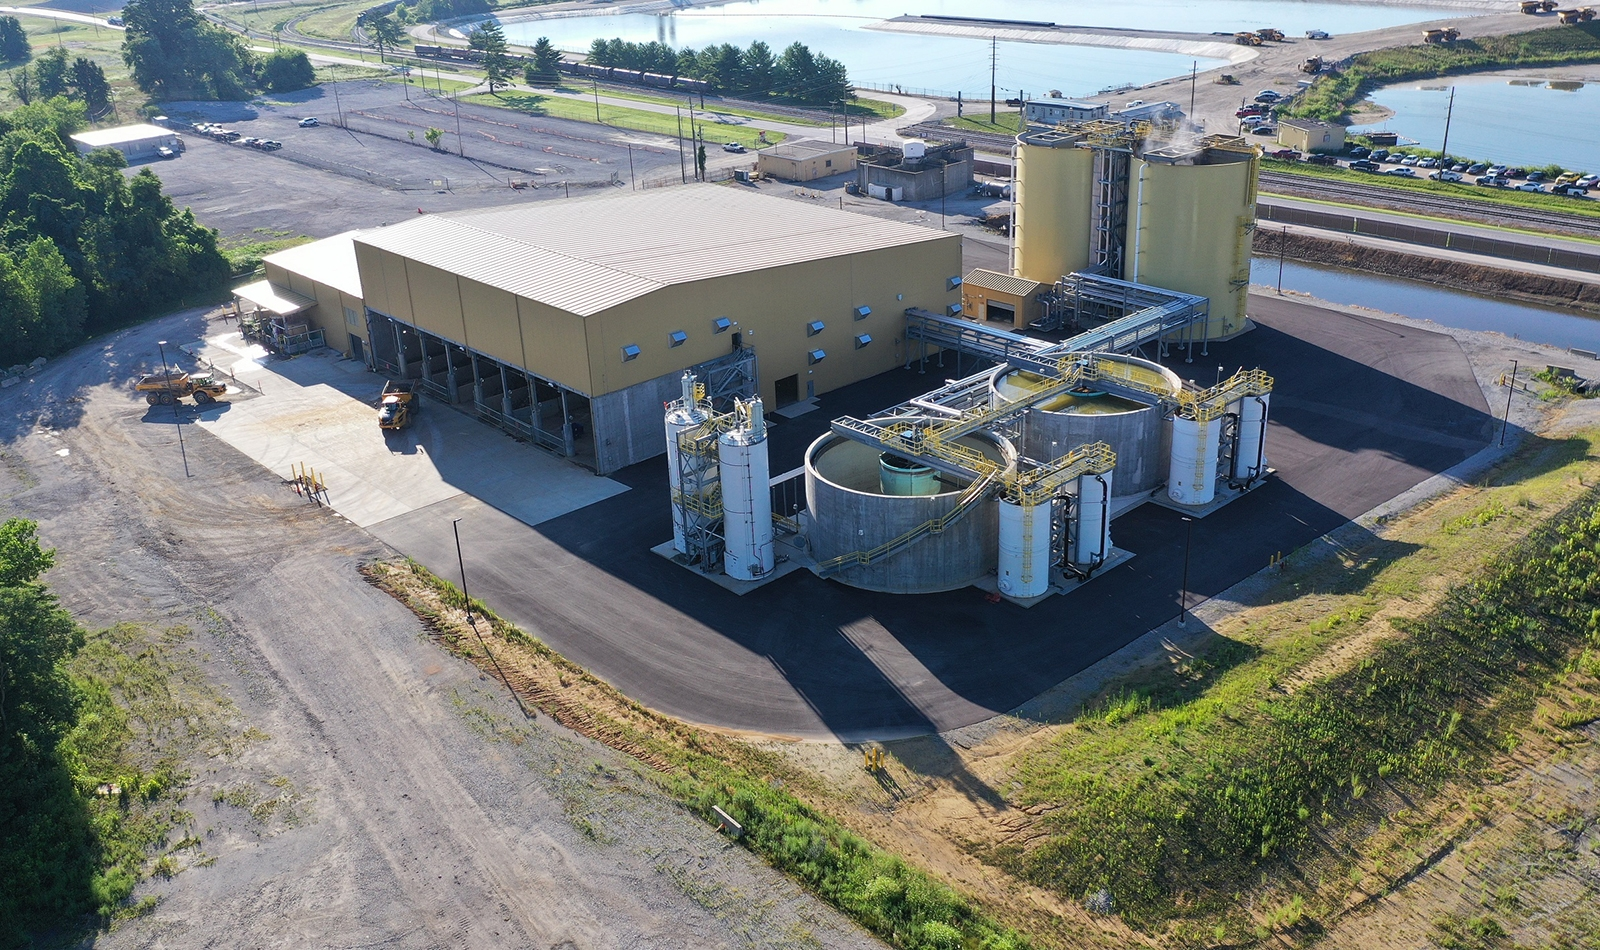 Ghent state-of-the-art water treatment facilities